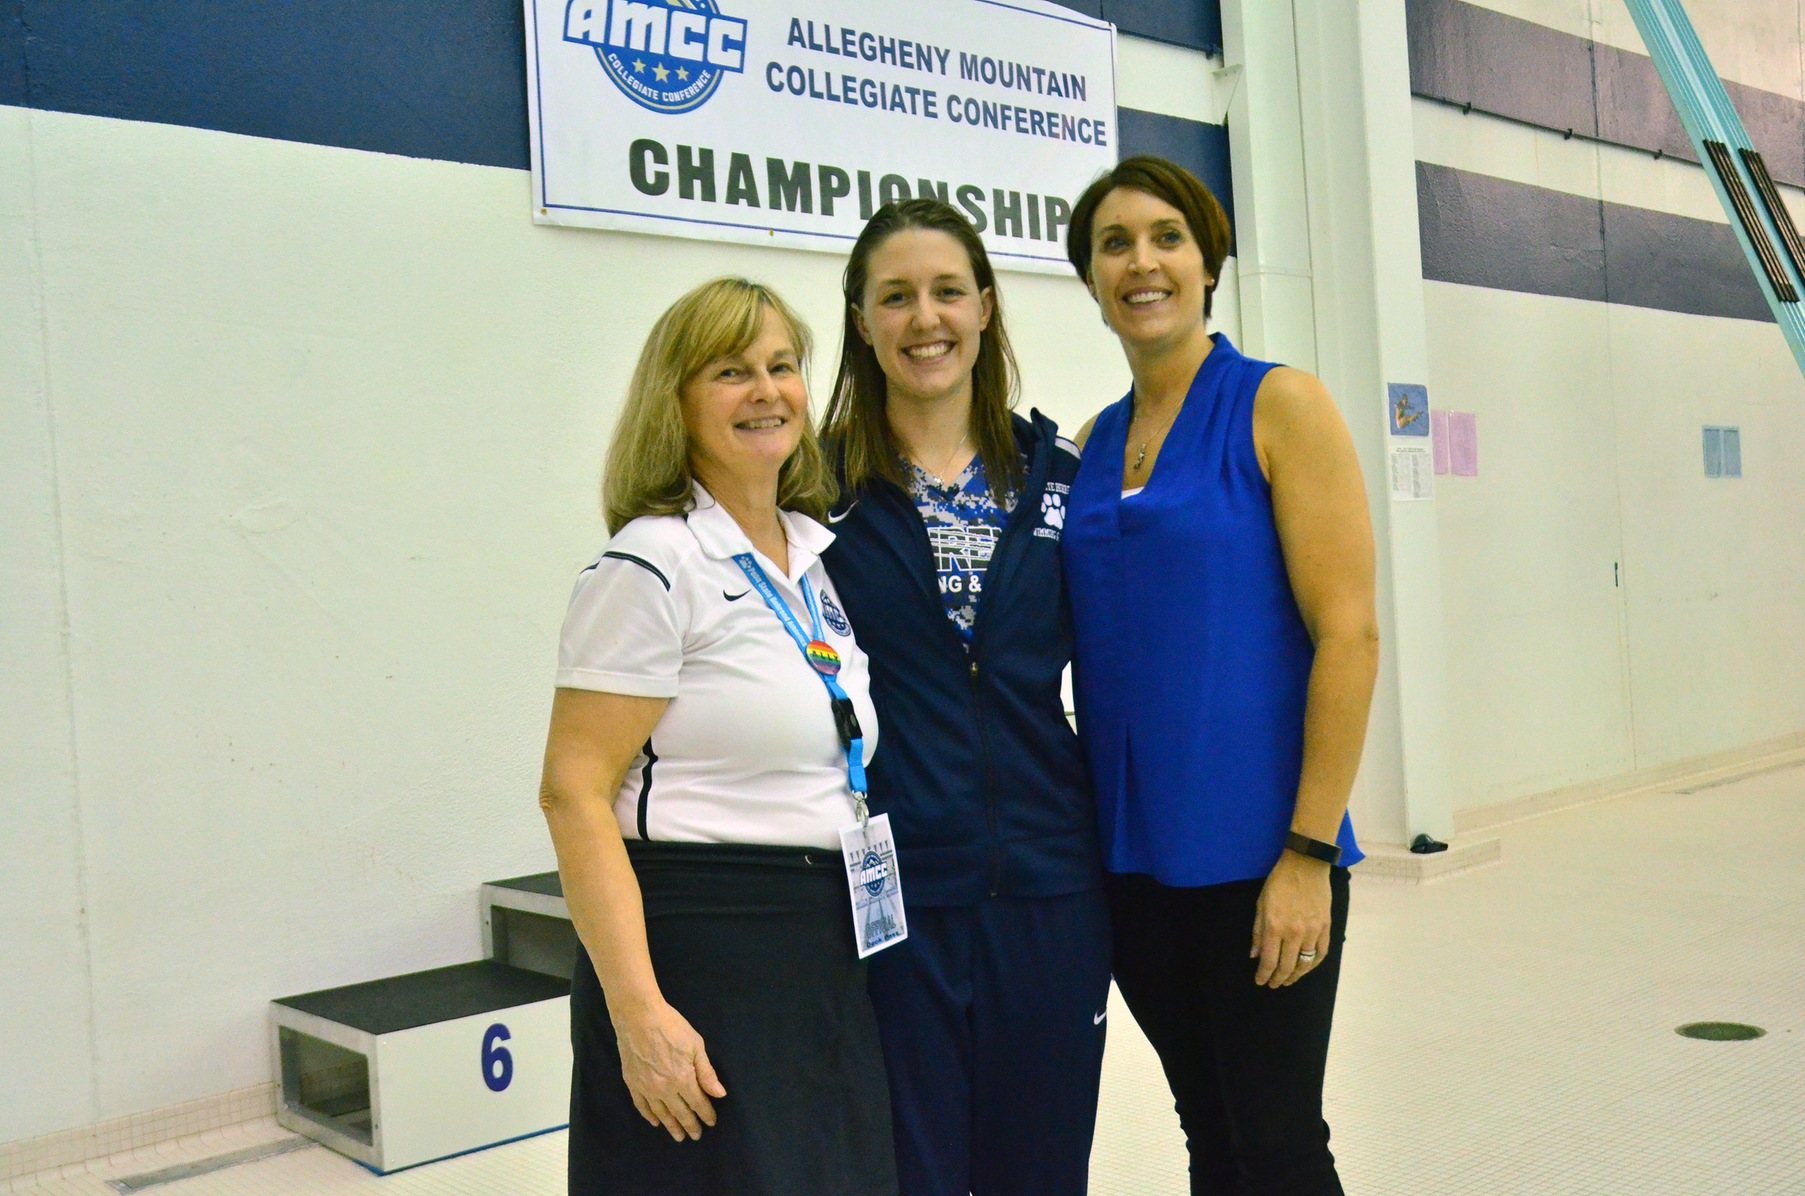 Lowery Headlines All-AMCC Women's Swimming and Diving Team